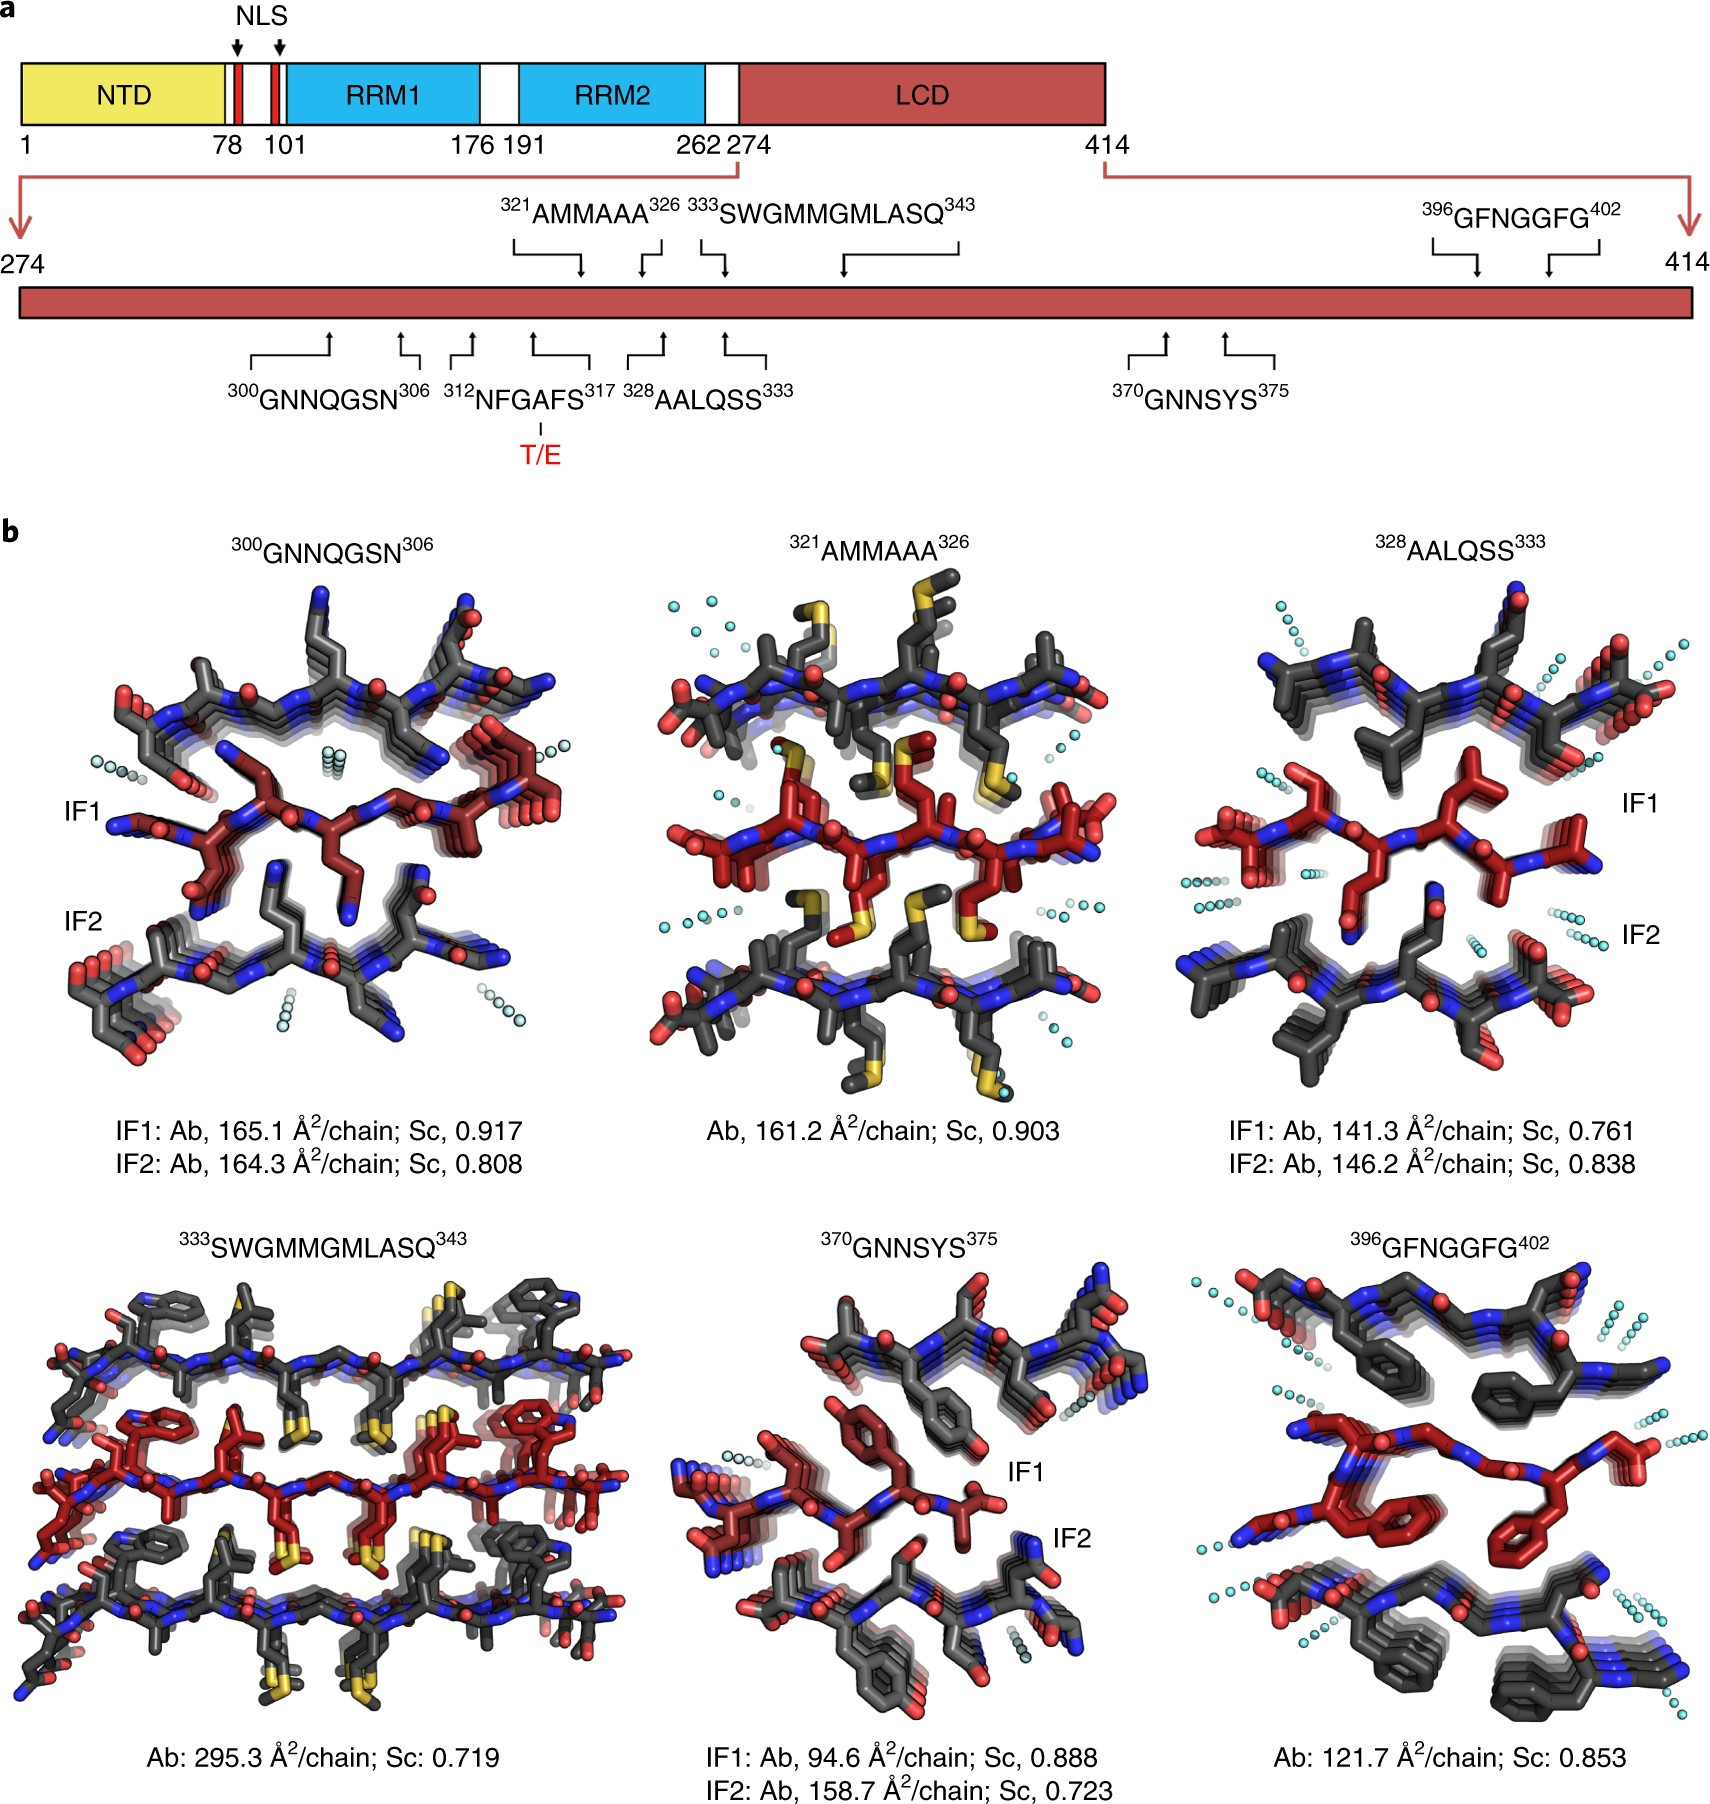 Atomic structures of TDP-43 LCD segments and insights into